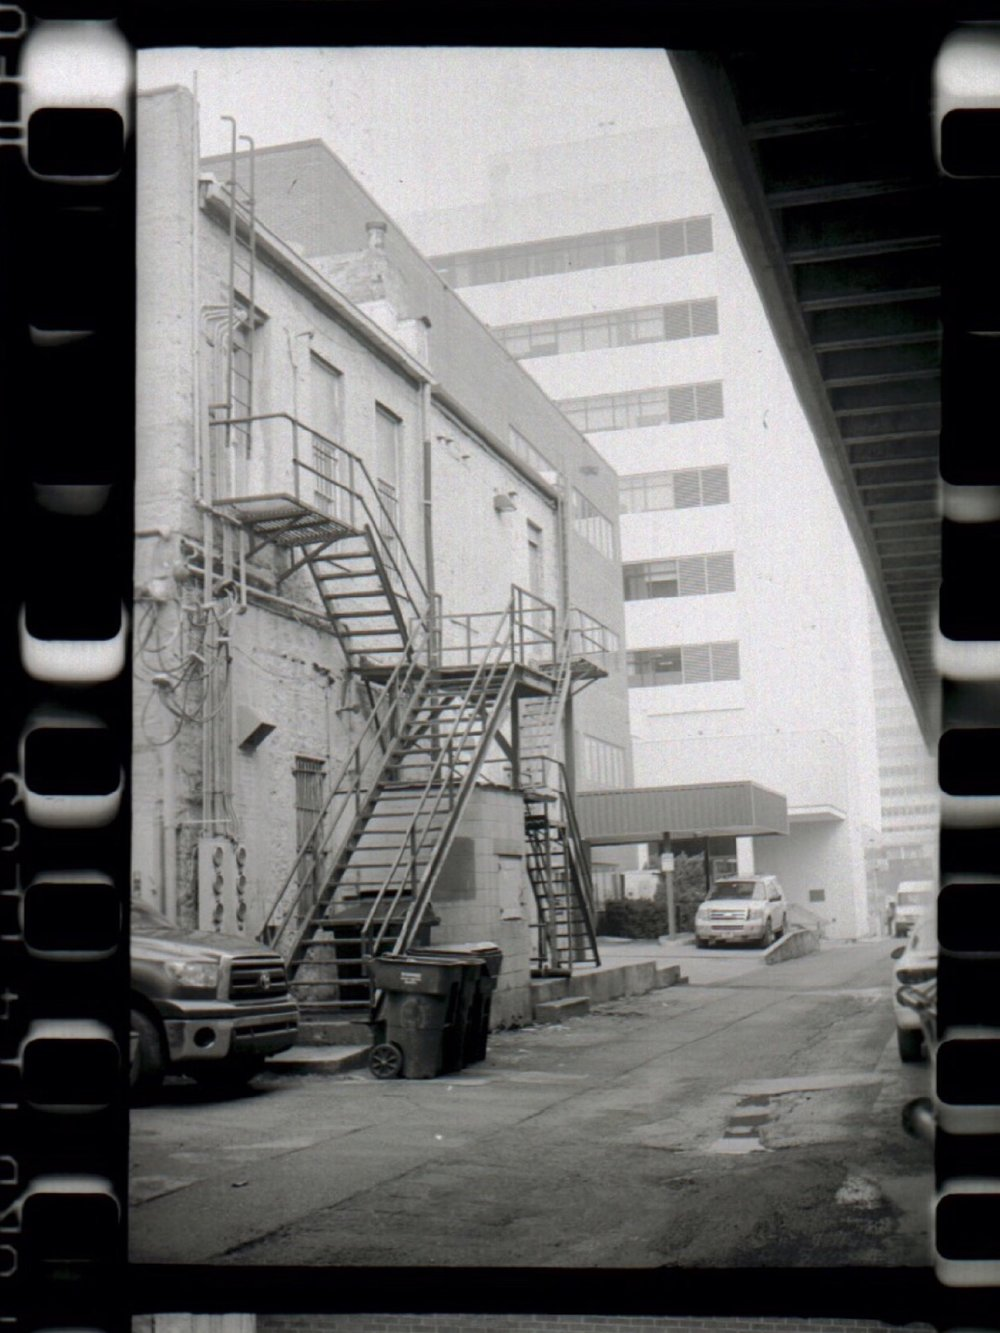 Some negatives I developed back in the day.